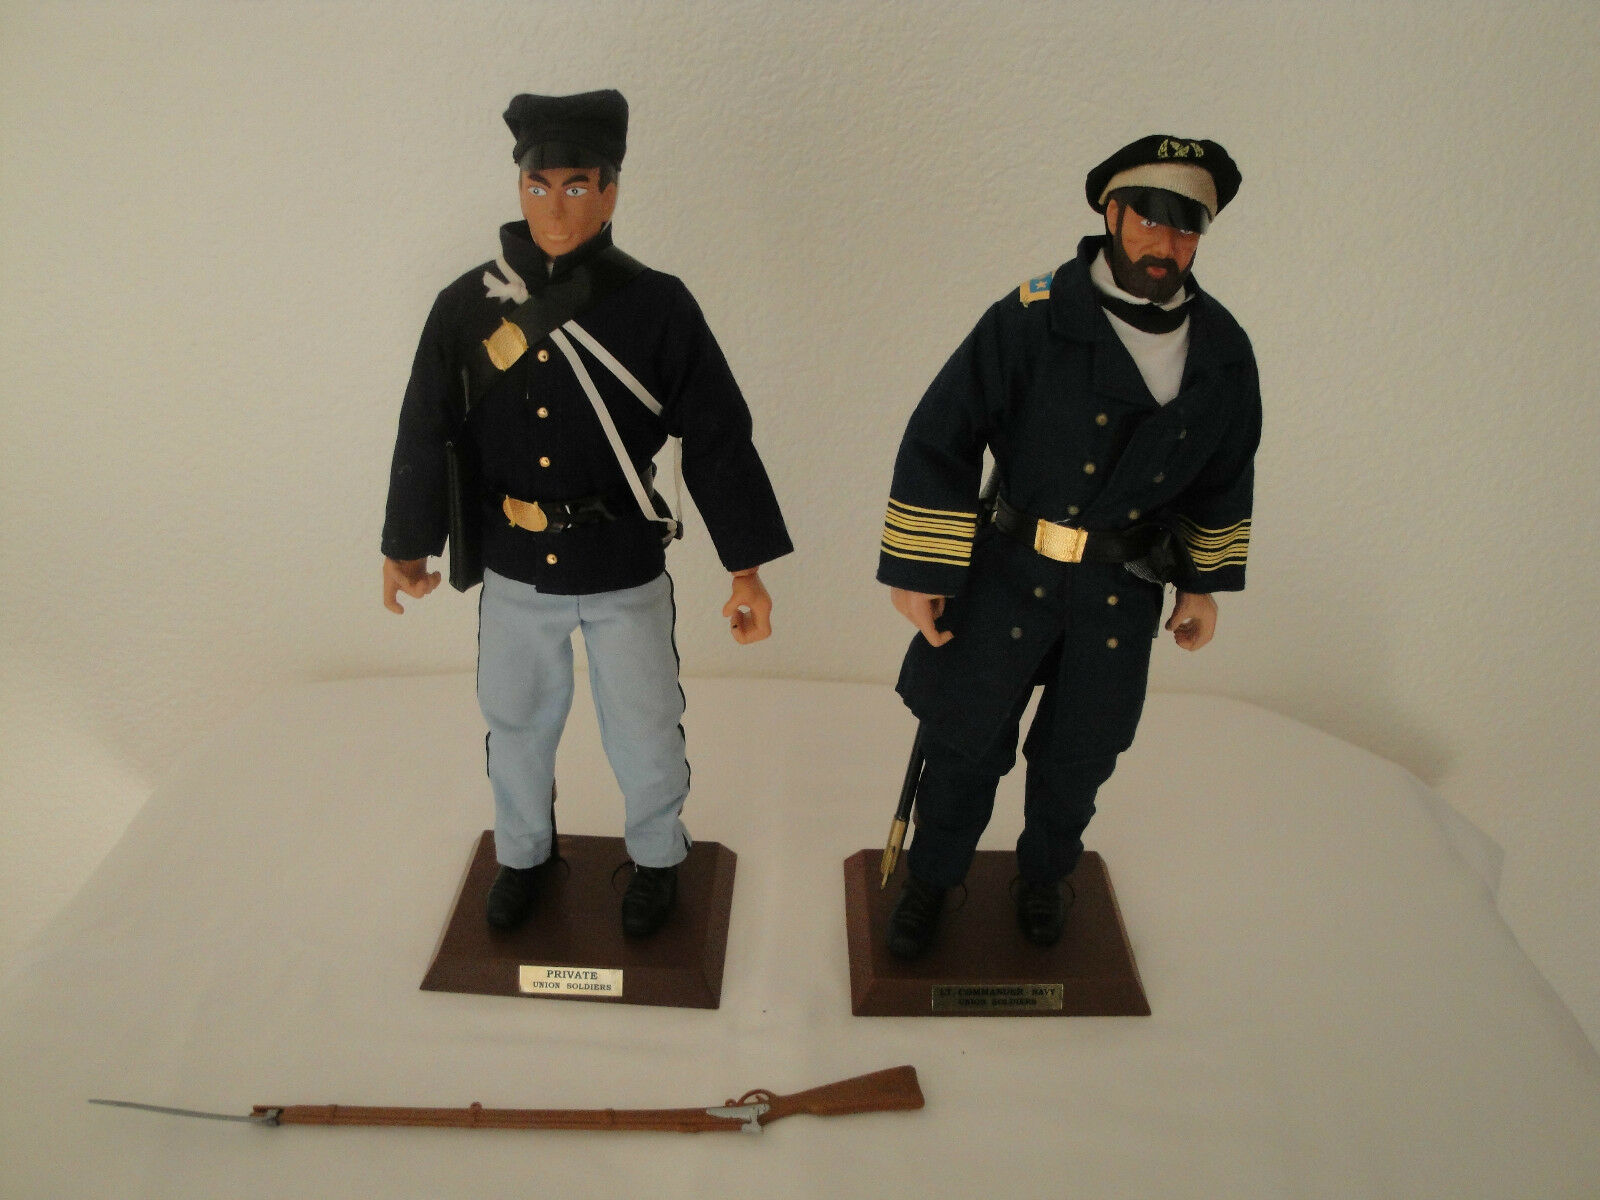 SOLDIER OF THE WORLD 12 INCH 1 6 ACTION FIGURE CIVIL WAR SOLDIER